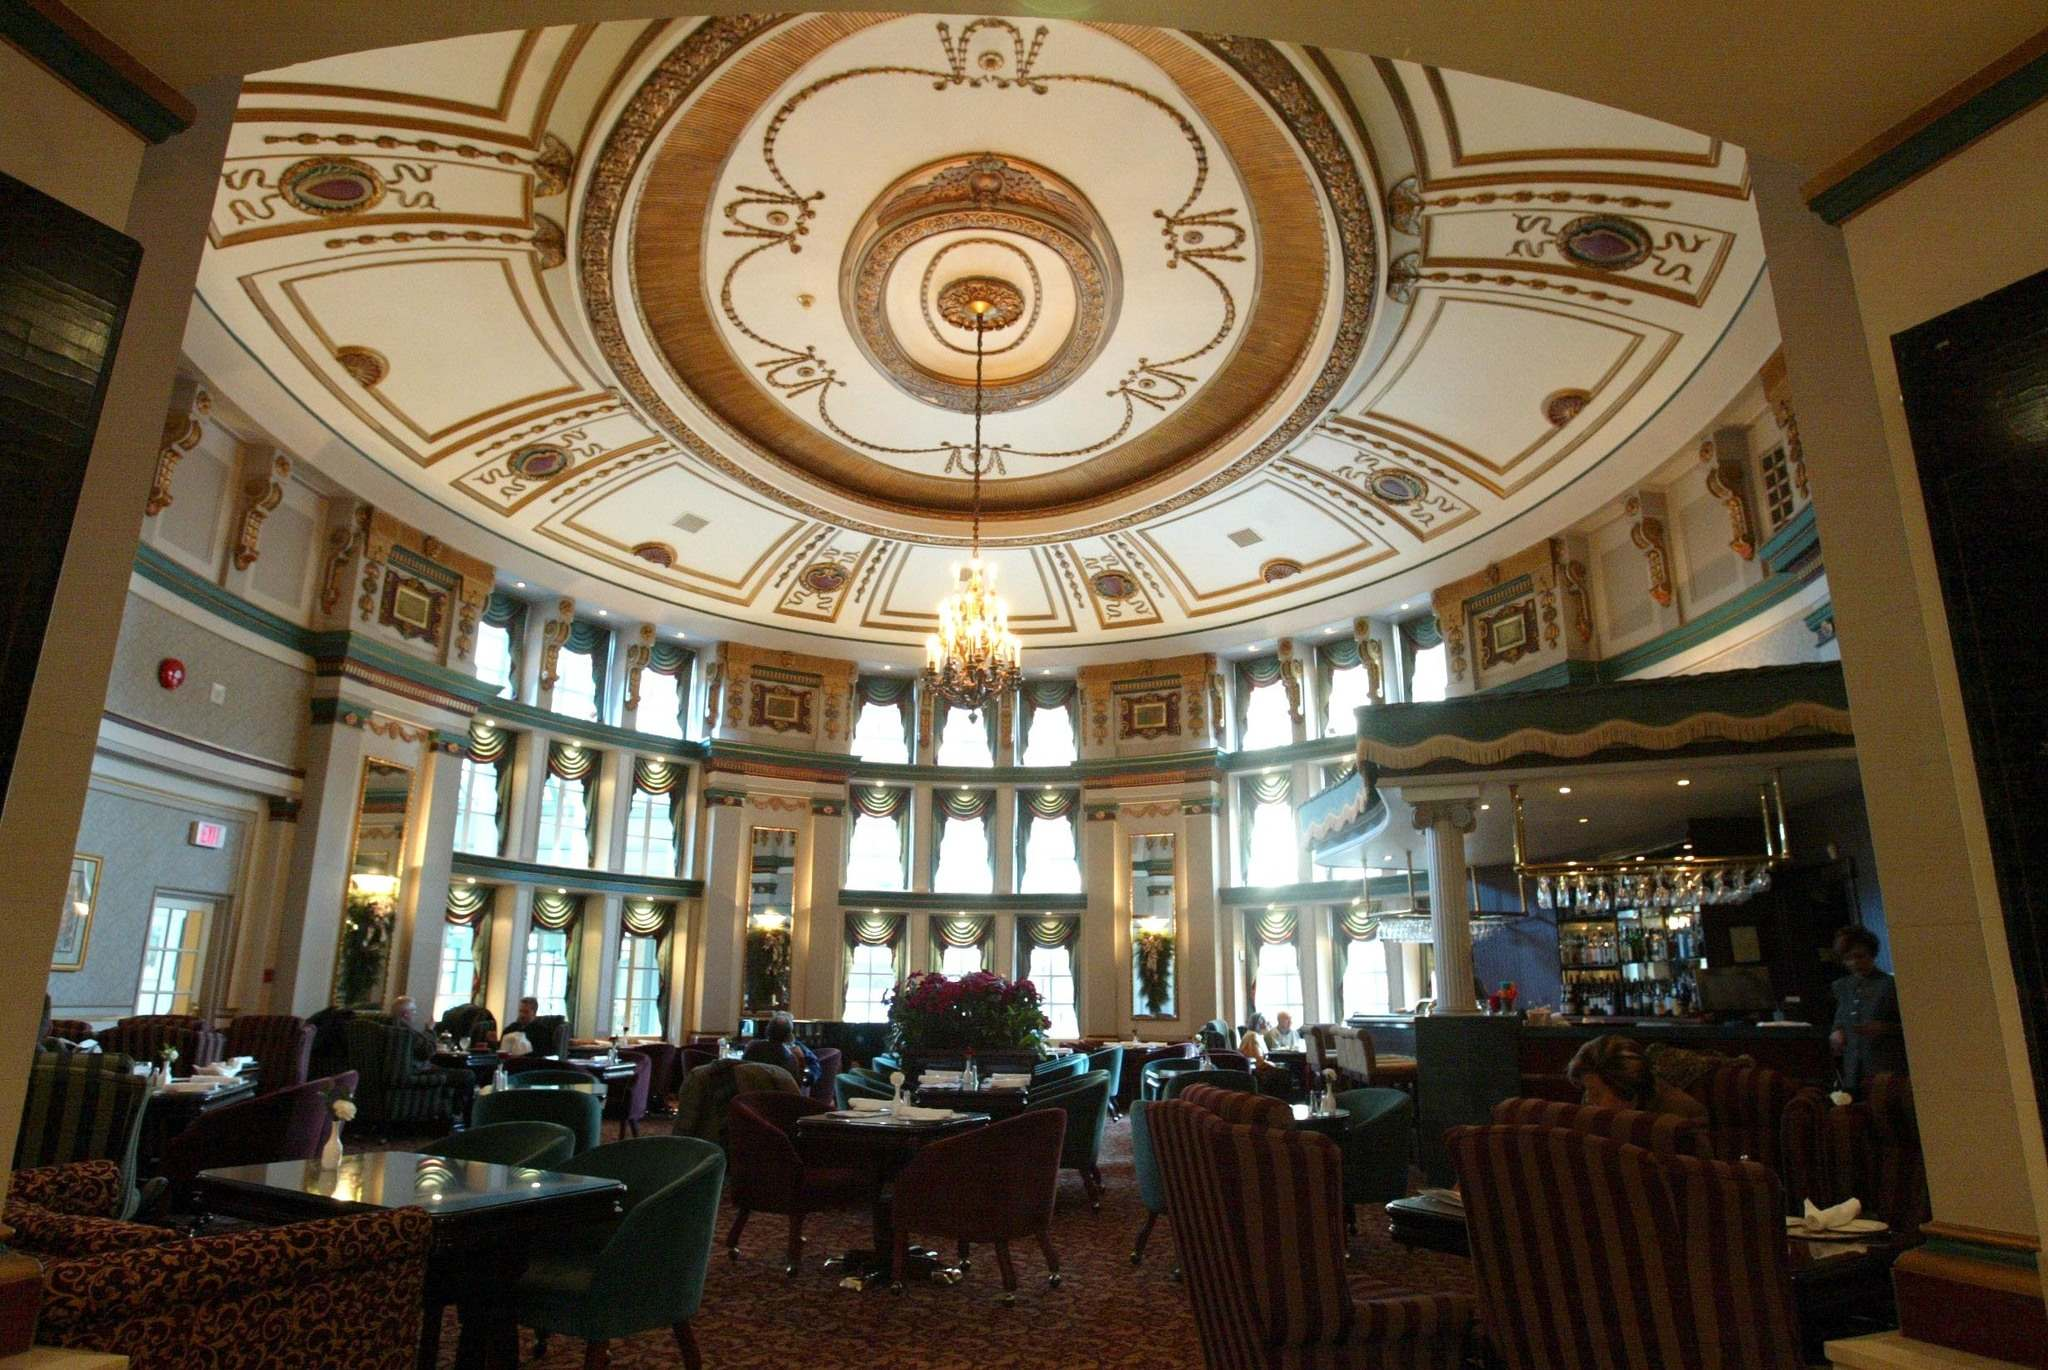 WAYNE GLOWACKI / WINNIPEG FREE PRESS FILES</p><p>The Palm Room at the Hotel Fort Garry. It was originally built by the Grand Trunk Pacific Railway.</p>